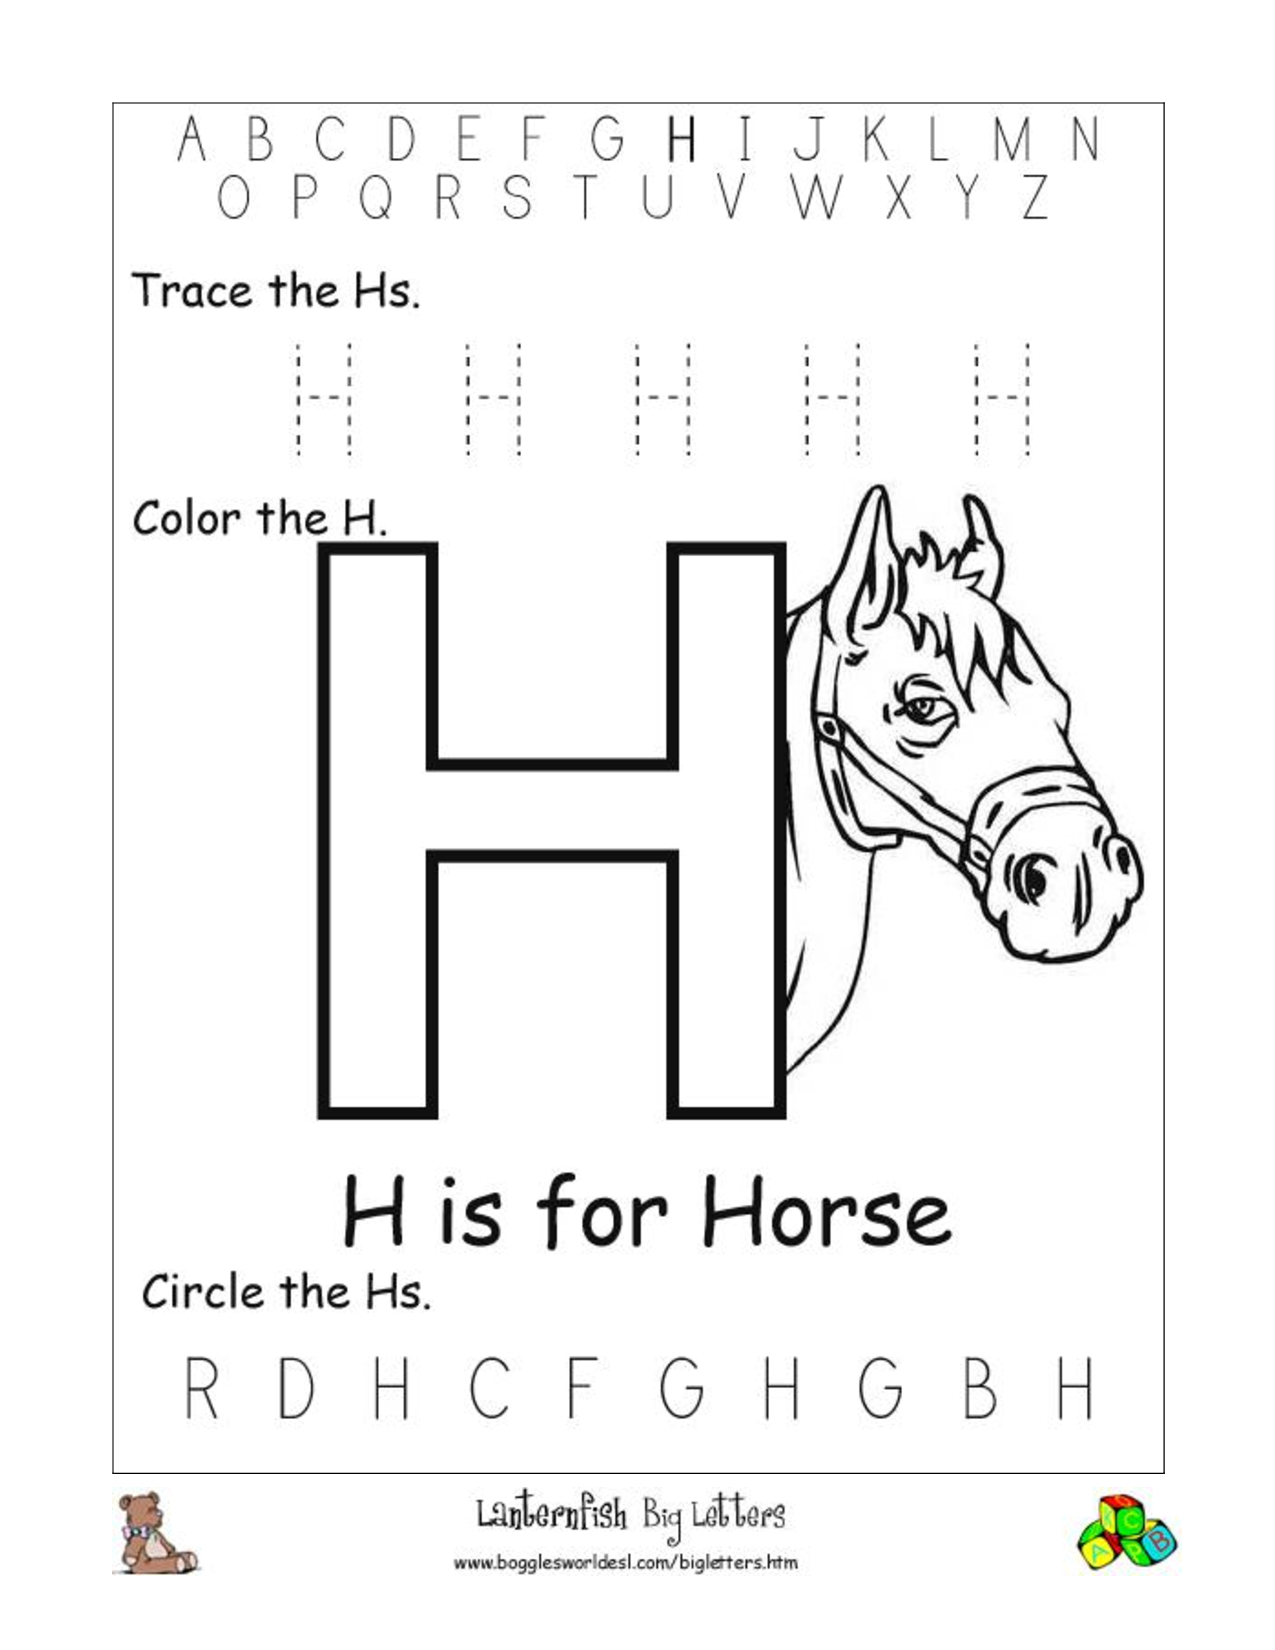 Alphabet Worksheets For Preschoolers |  Activities throughout Letter H Worksheets For Pre K